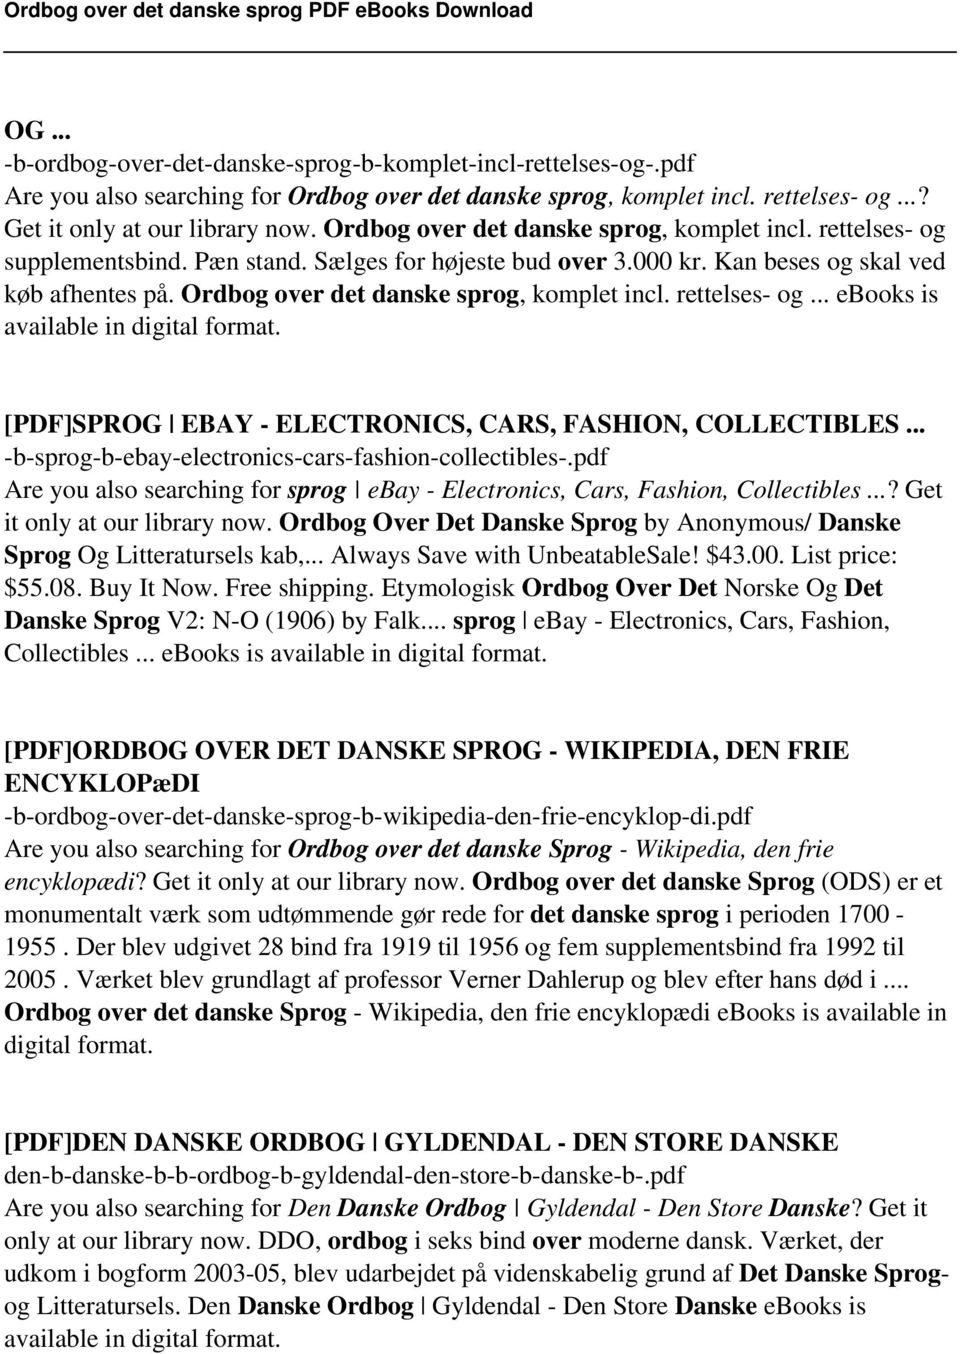 Ordbog over det danske sprog, komplet incl. rettelses- og... ebooks is available in digital format. [PDF]SPROG EBAY - ELECTRONICS, CARS, FASHION, COLLECTIBLES.